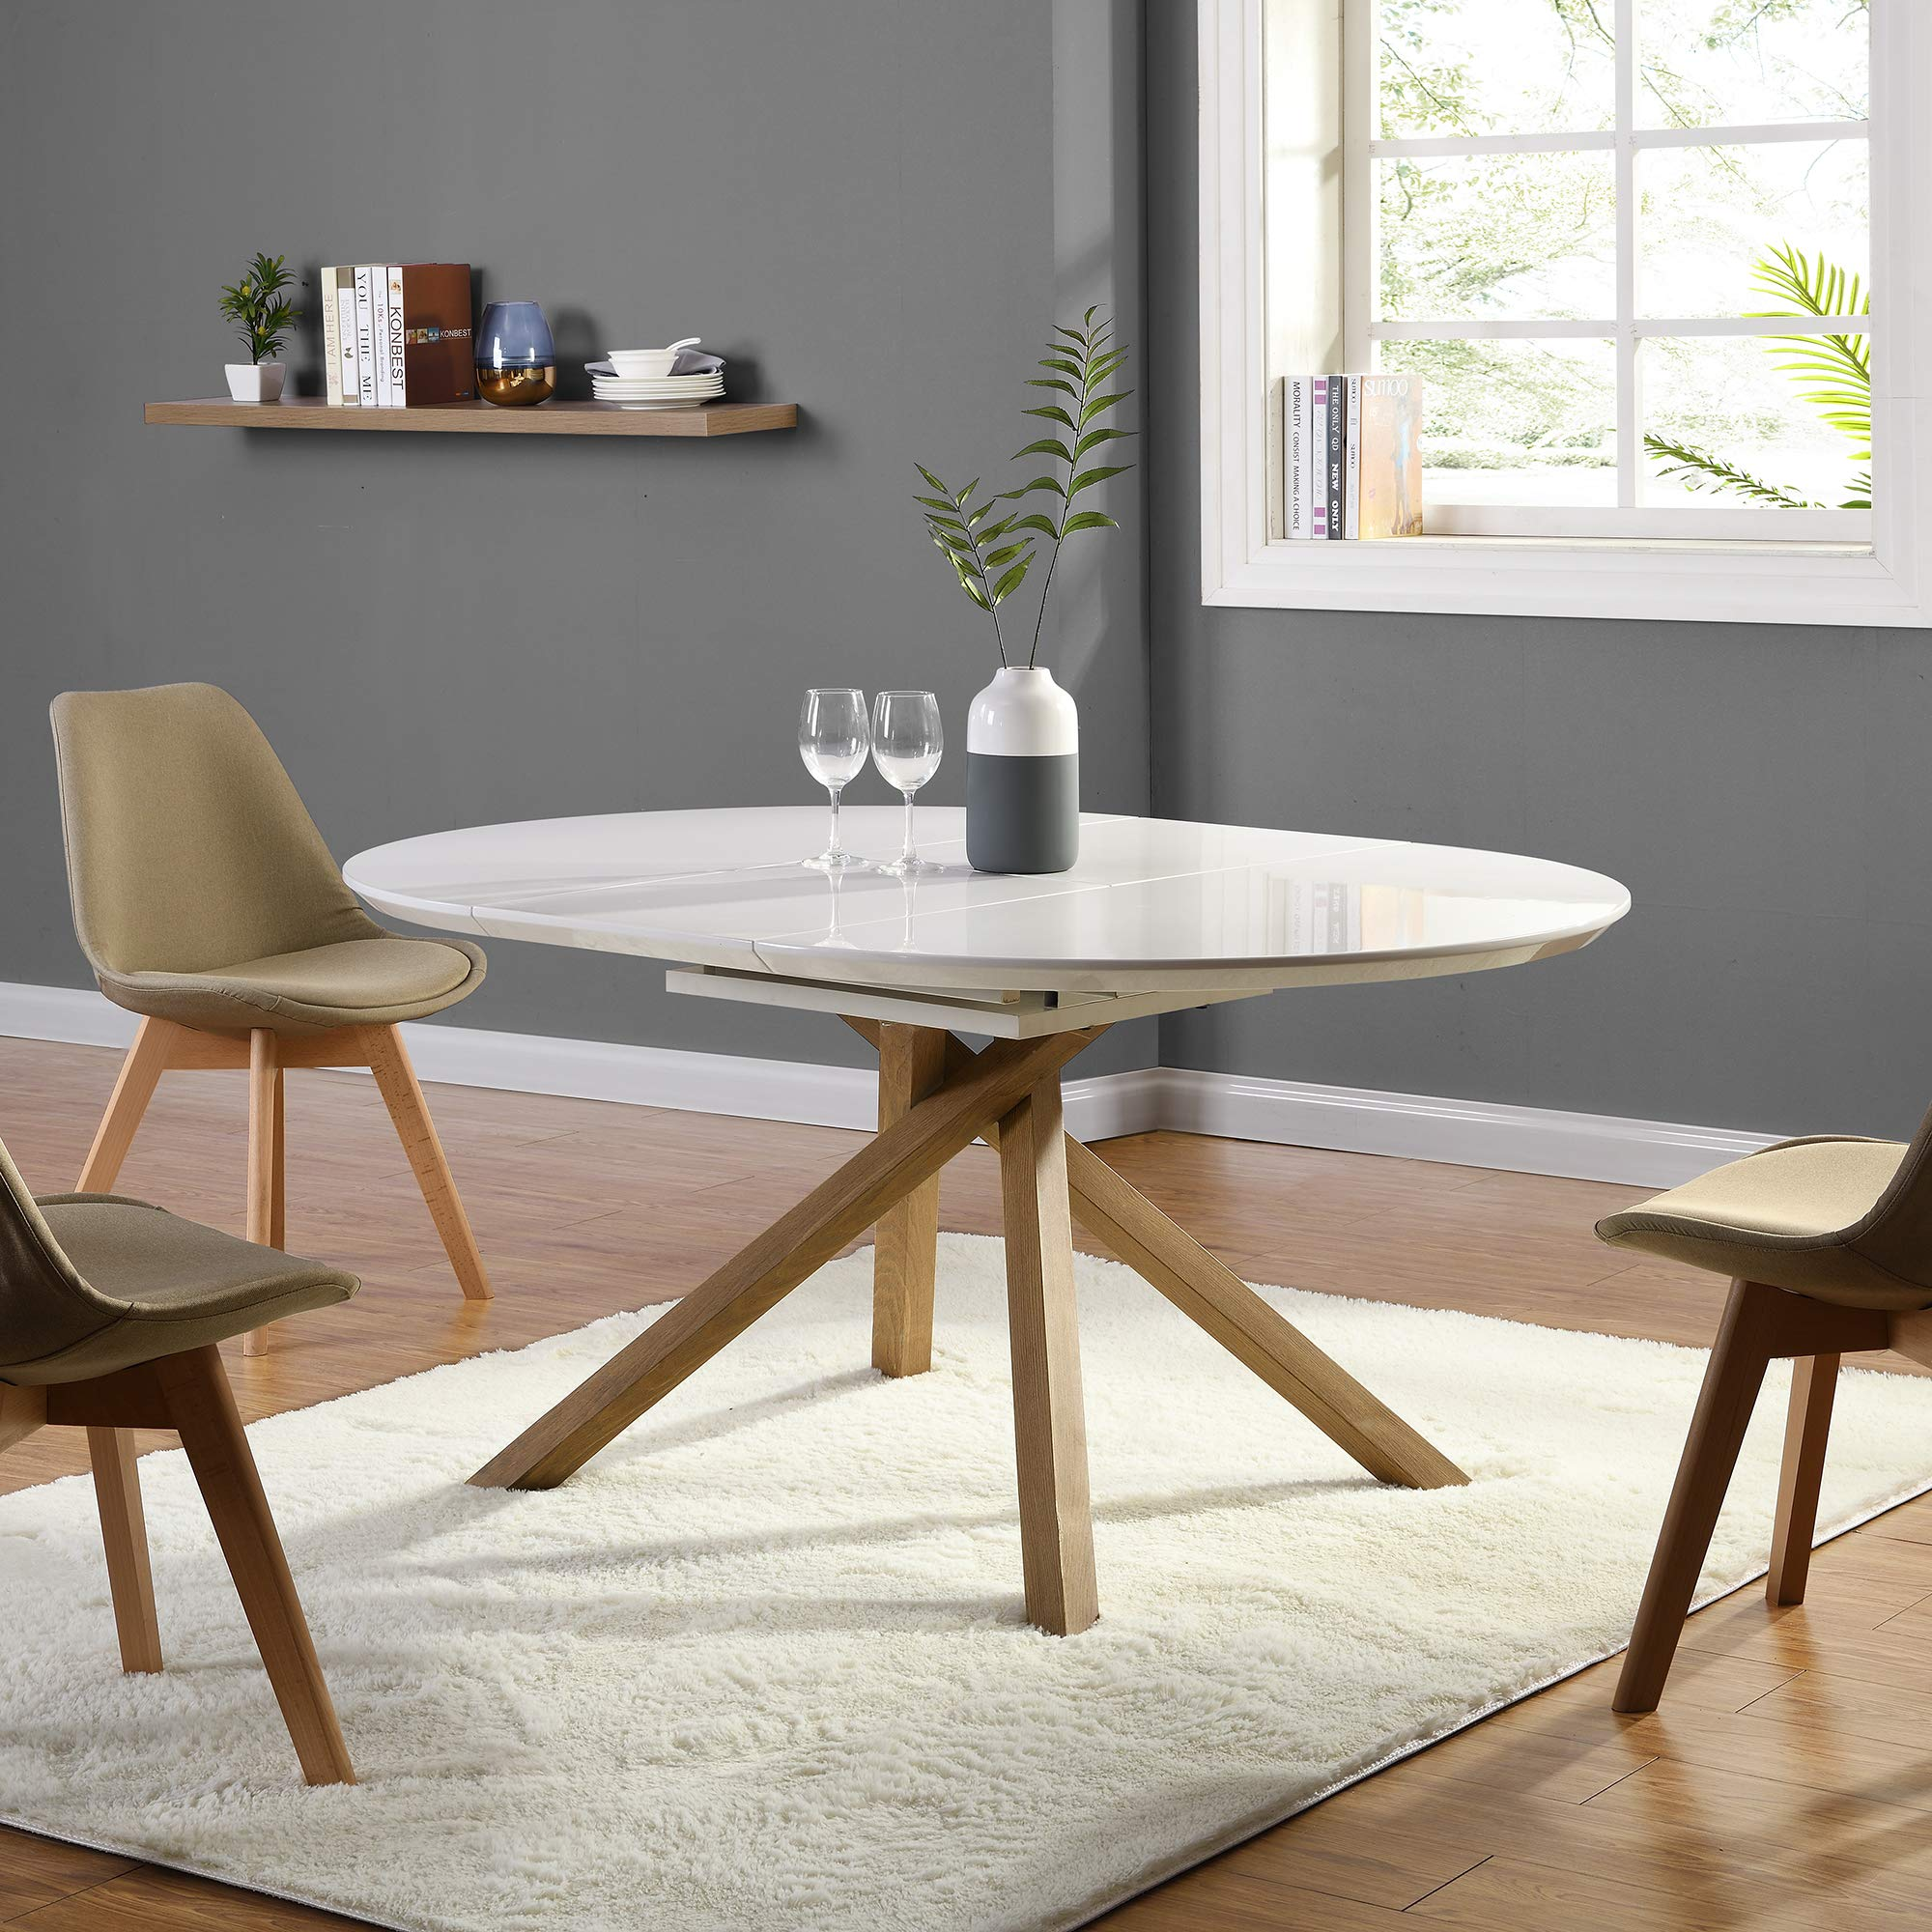 Cherry Tree Furniture Grenchen Round To Oval 4 To 6 Seater White High Gloss Extendable Dining Table Buy Online In Mongolia At Mongolia Desertcart Com Productid 173537543